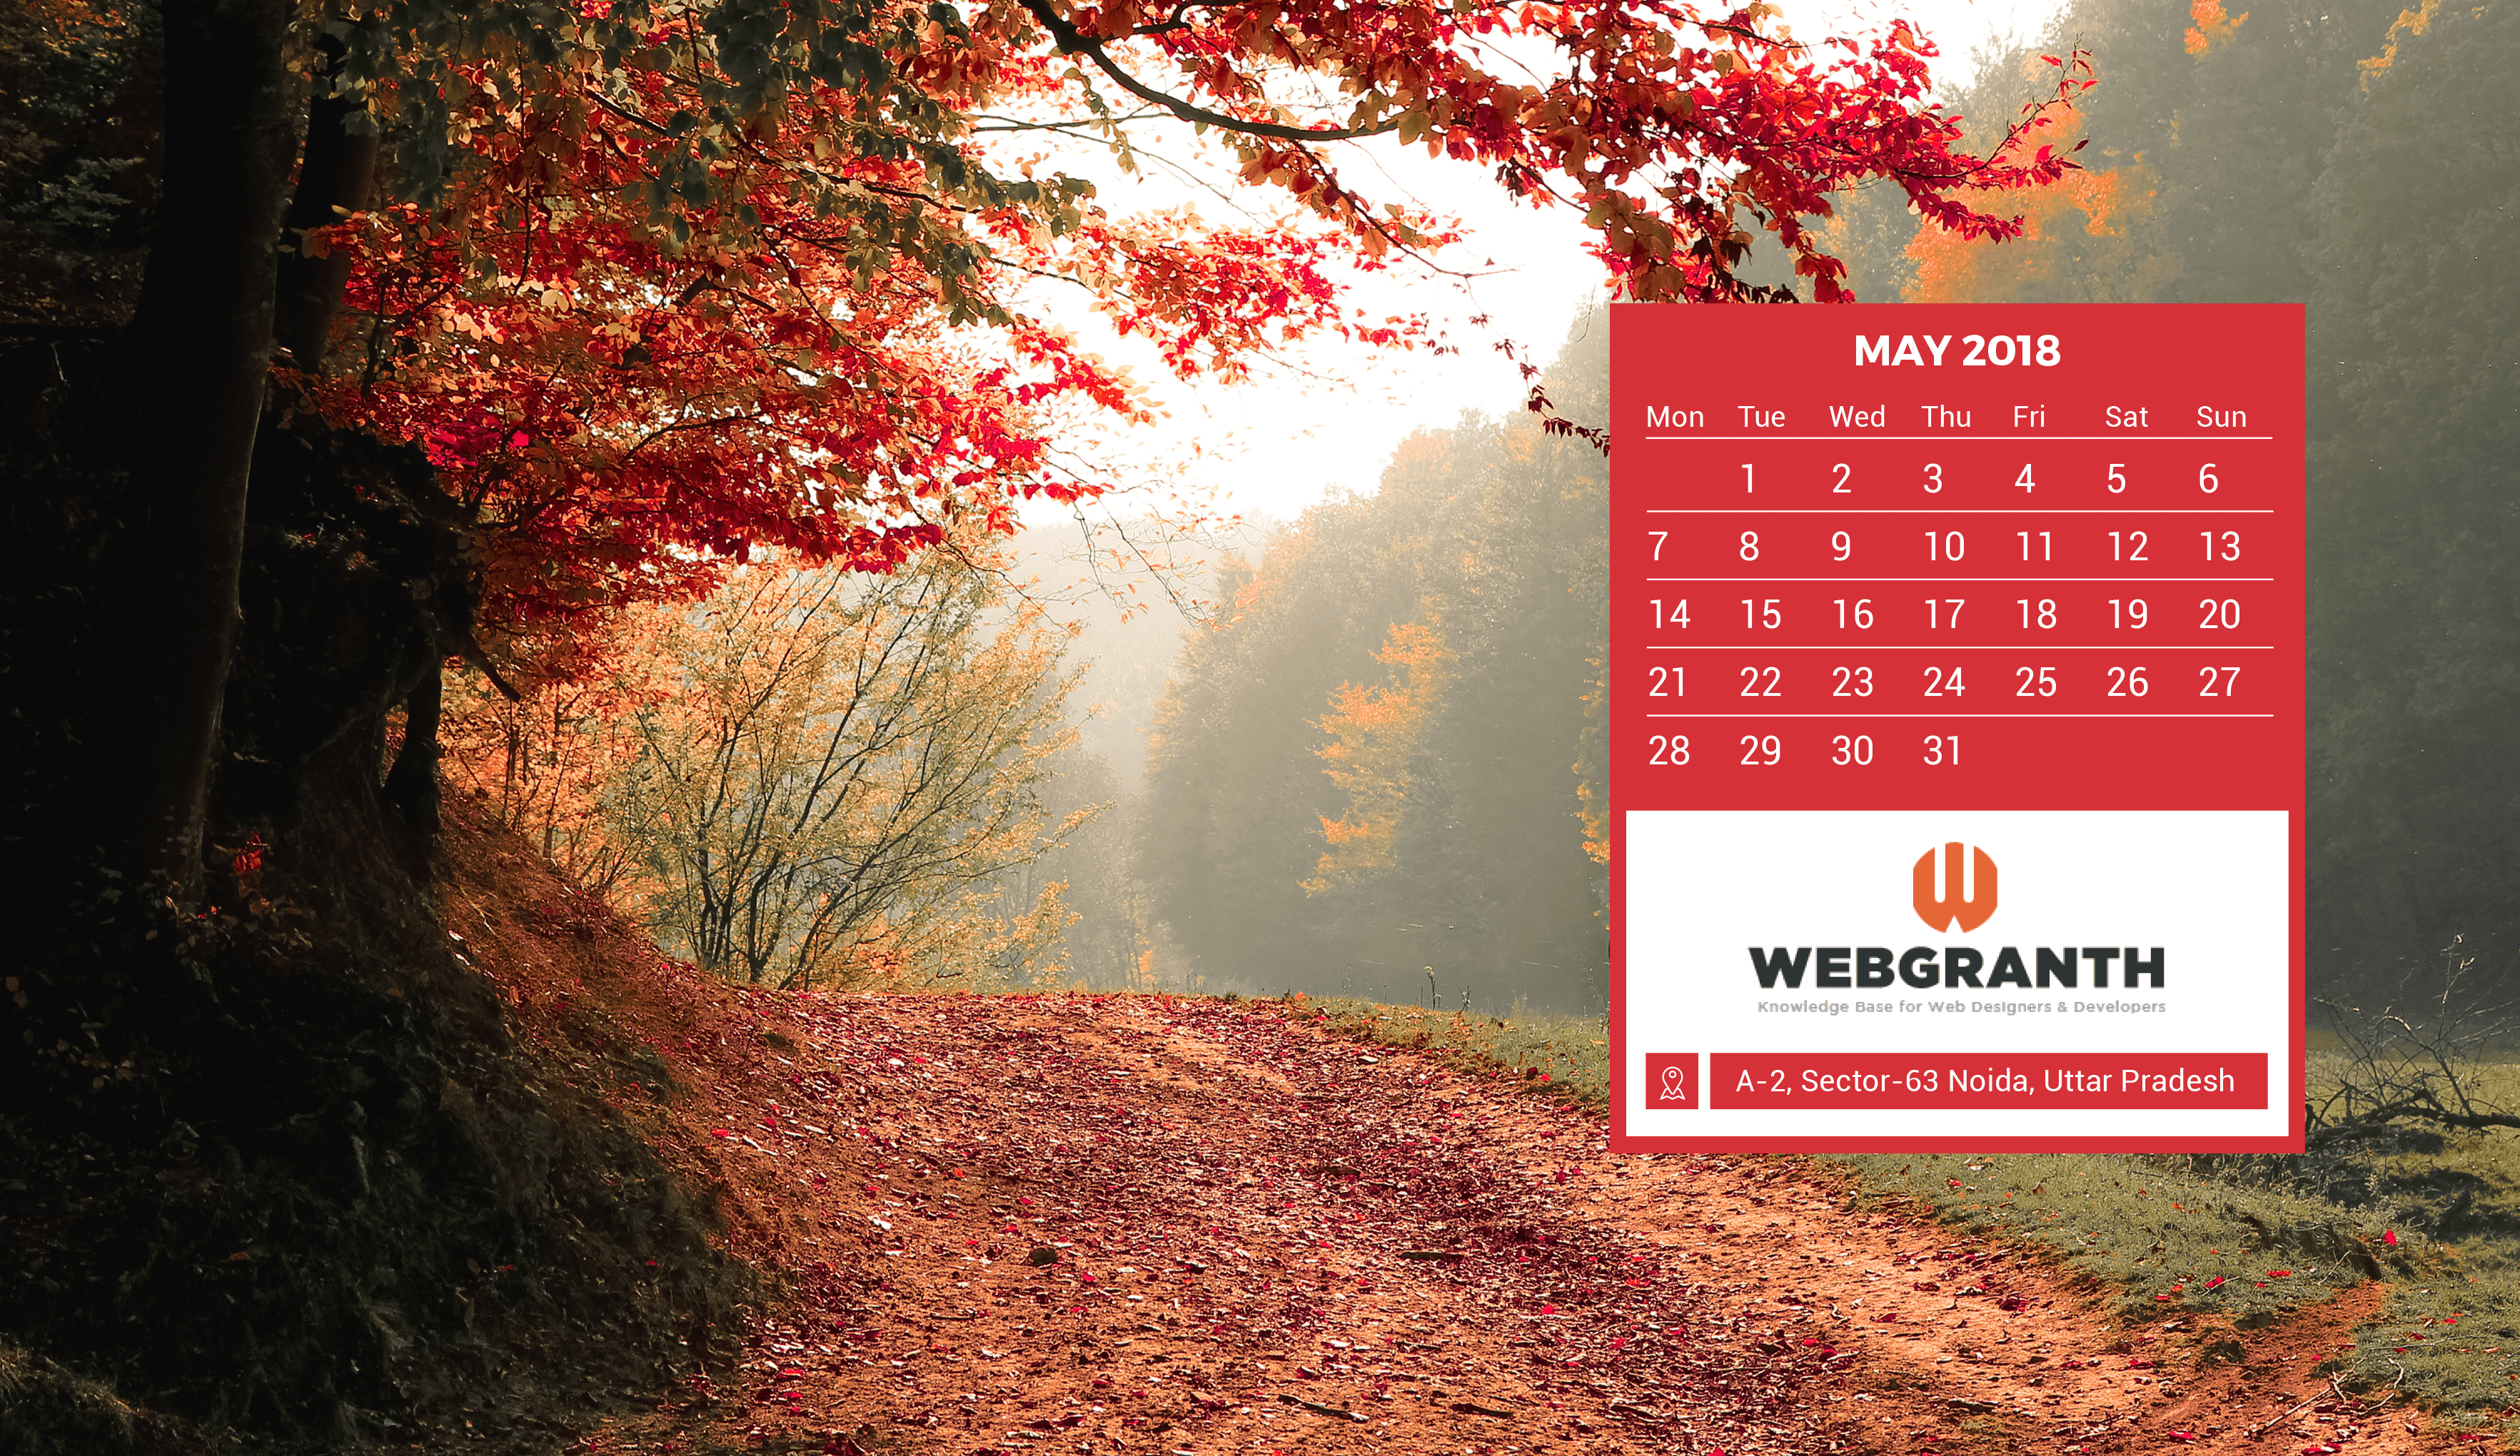 Wallpaper Calendar 2018 Download 2018 Calendar Wallpaper 3530x2040